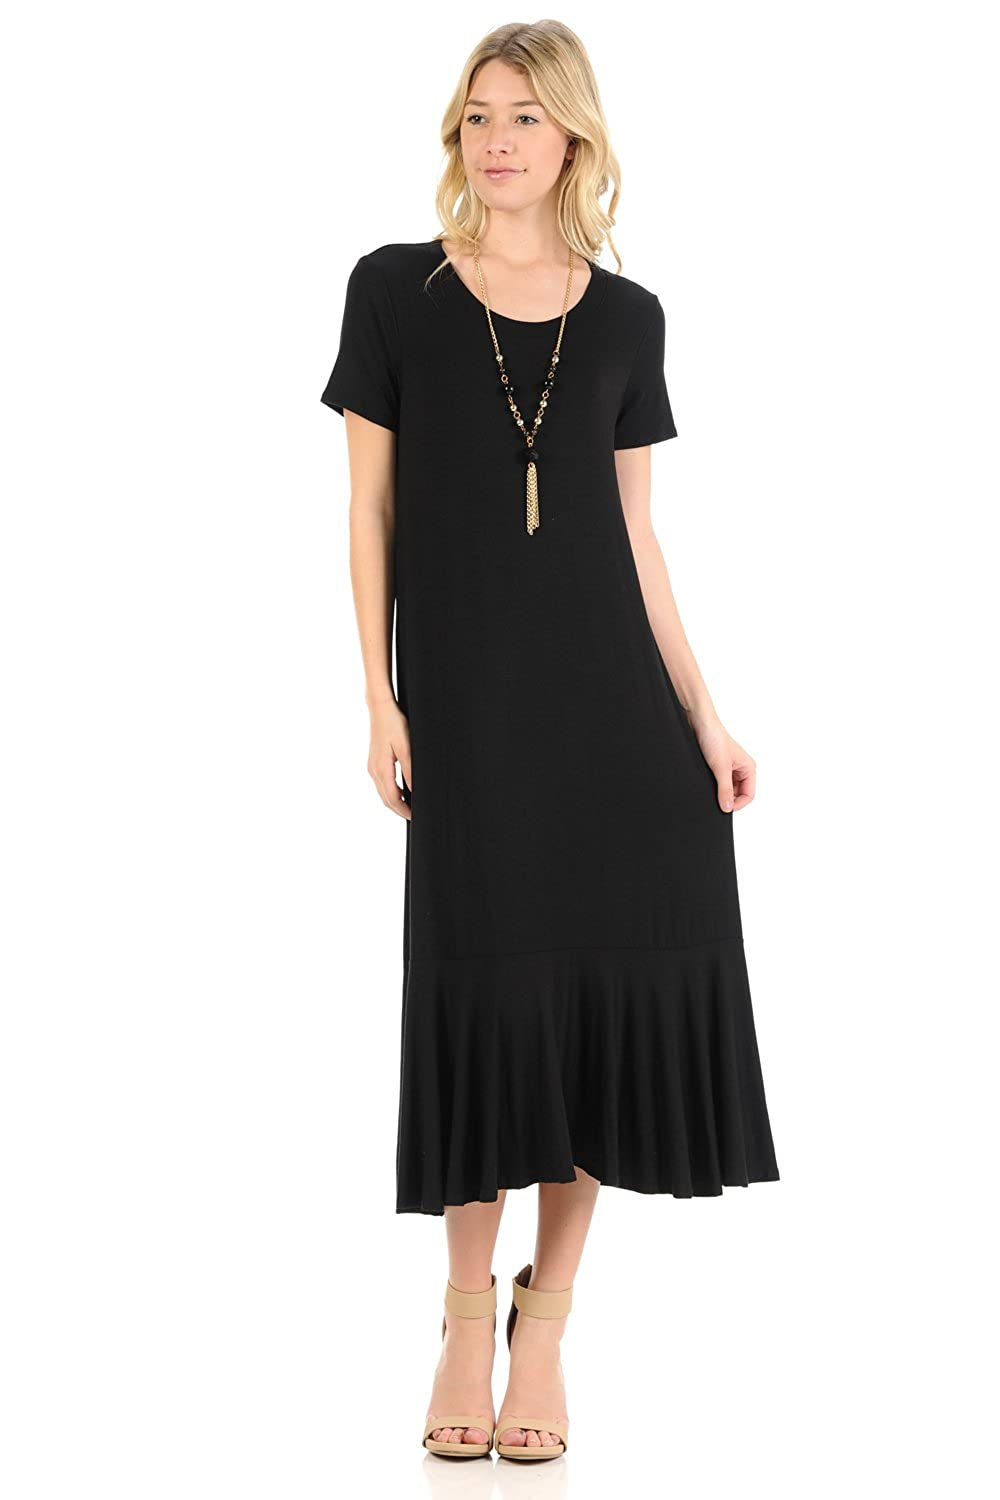 1920s Fashion & Clothing | Roaring 20s Attire iconic luxe Womens A-Line Ruffle Hemline Midi Dress $22.99 AT vintagedancer.com